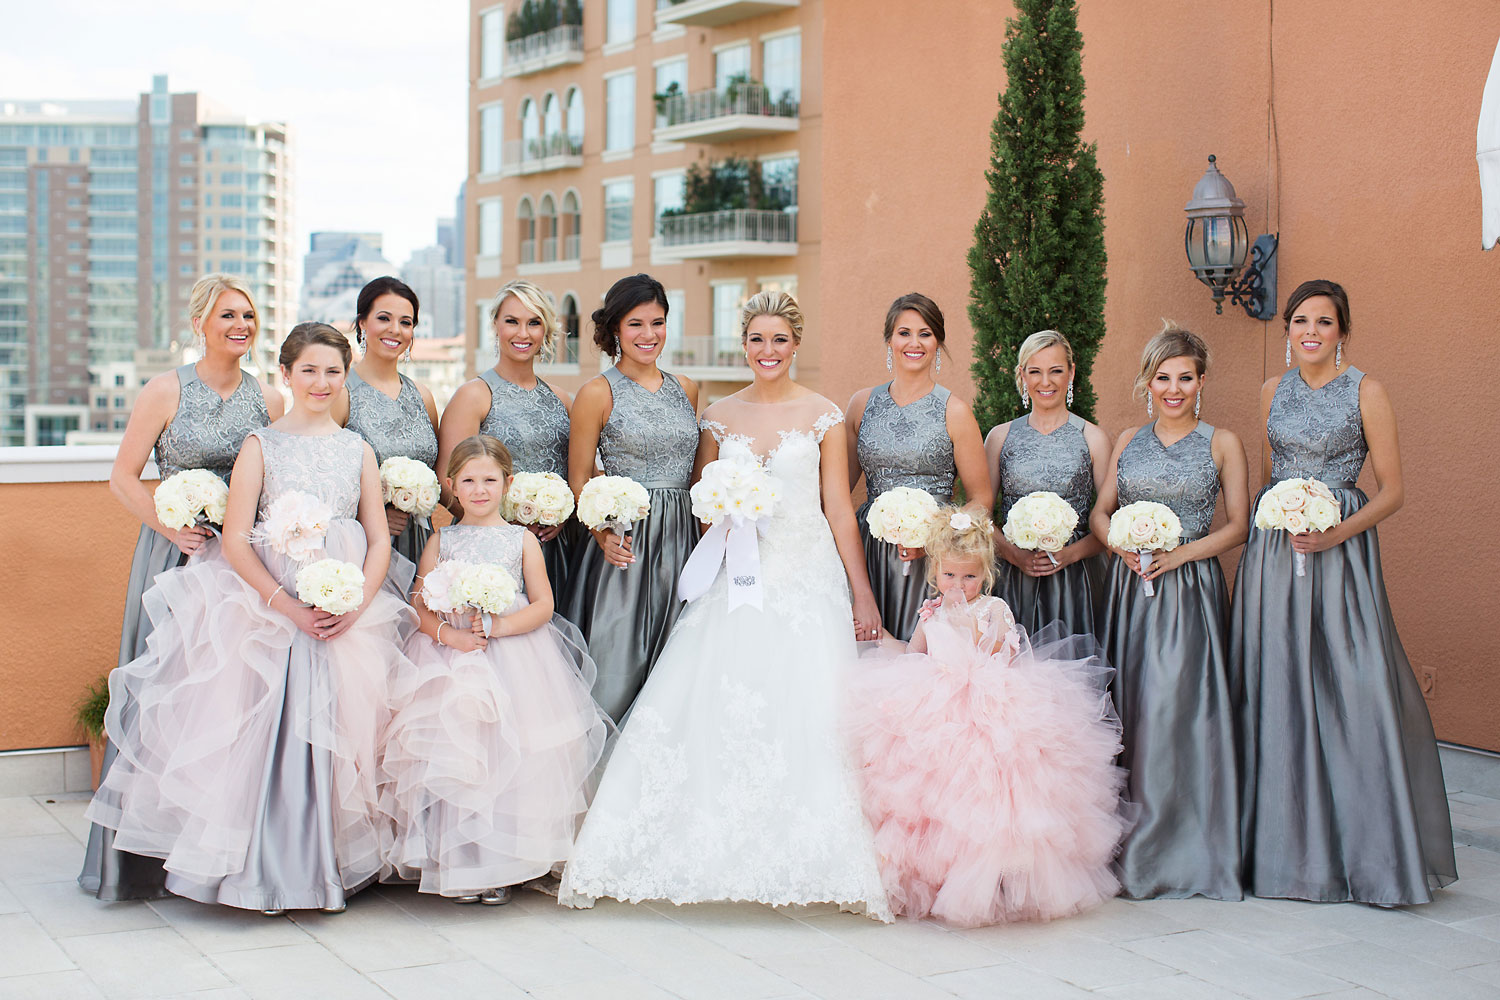 Inside weddings magazine summer 2017 issue preview inside inside weddings summer 2017 issue preview grey bridesmaid dresses and pink flower girl dresses ombrellifo Gallery